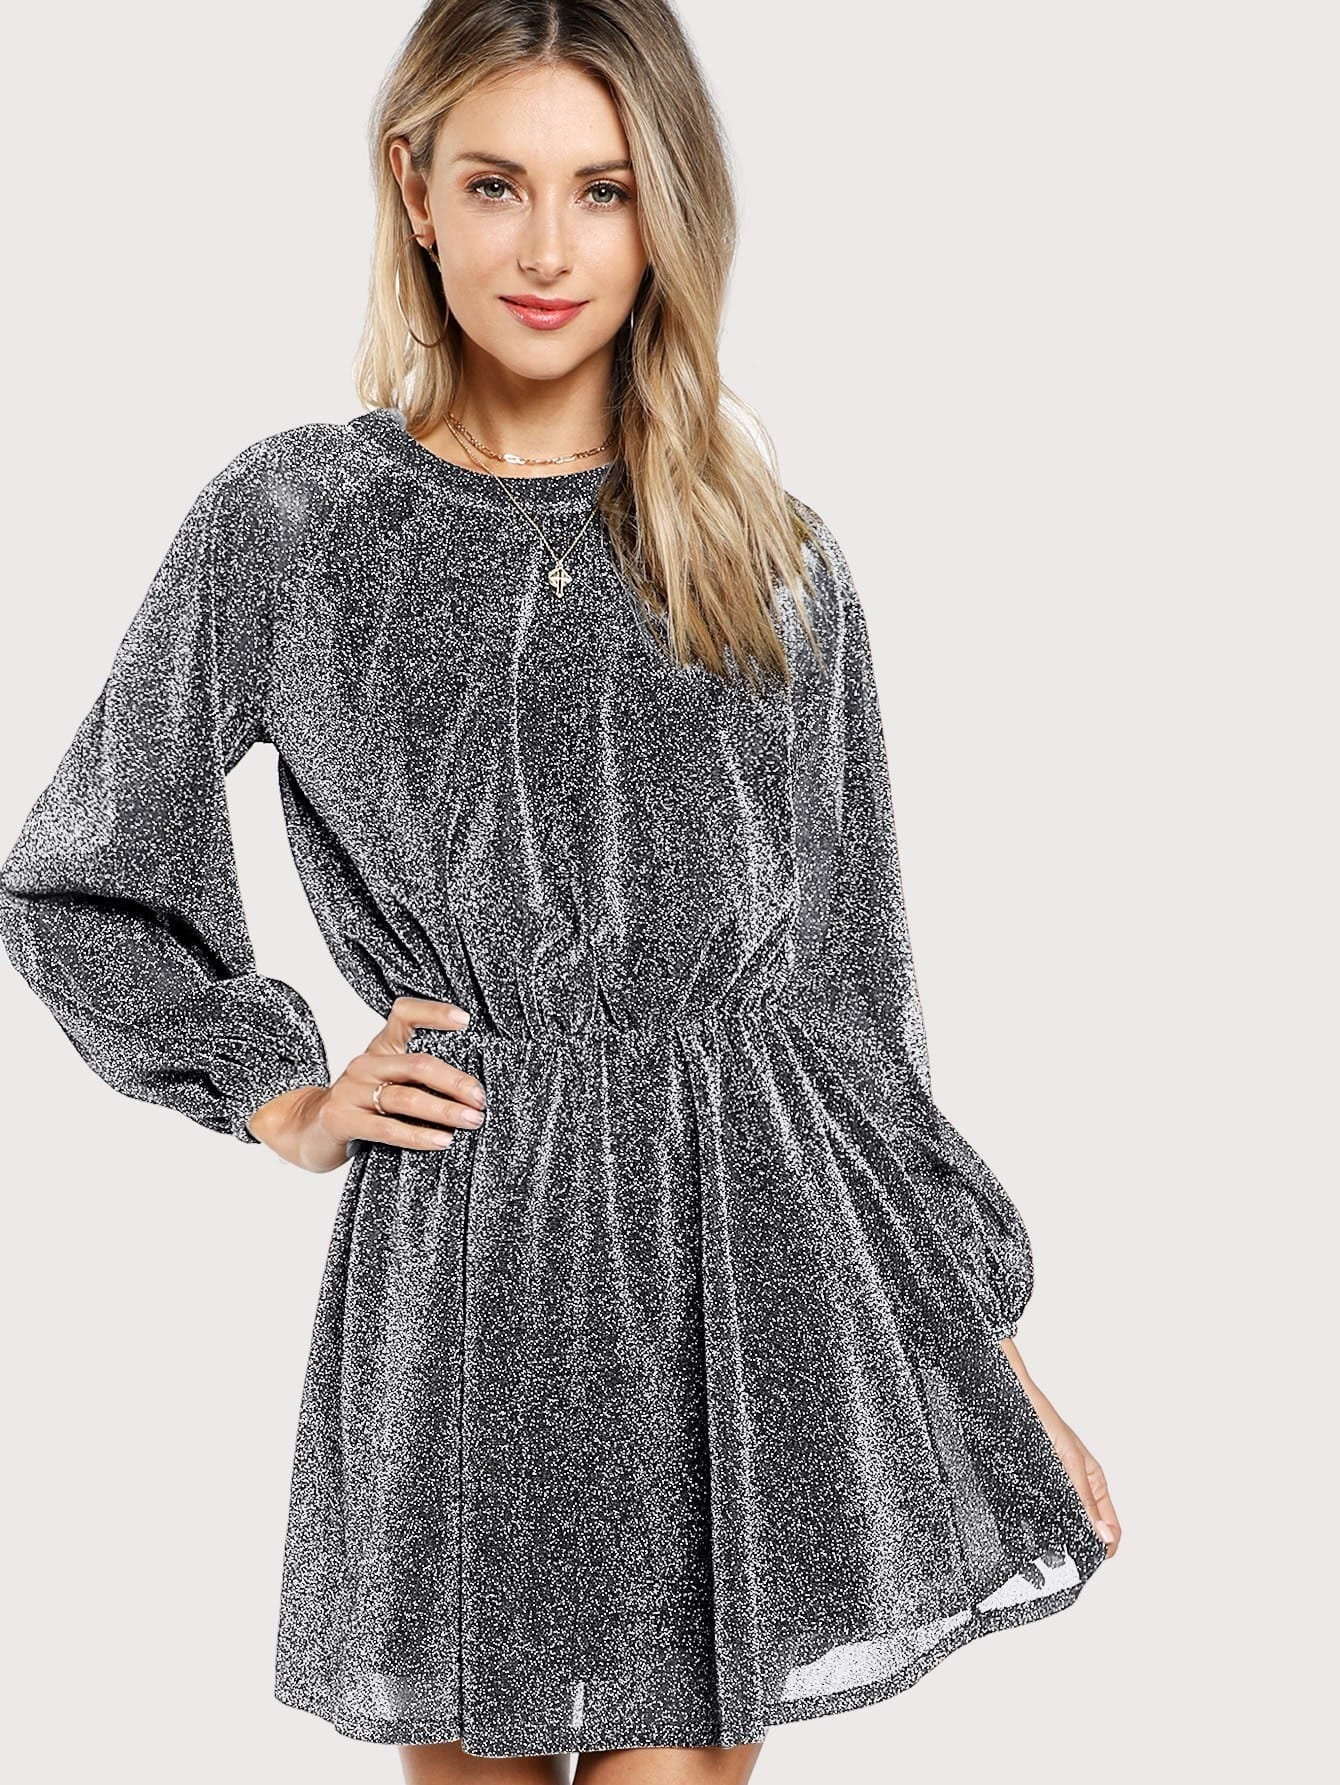 Bishop Sleeve Glitter Dress